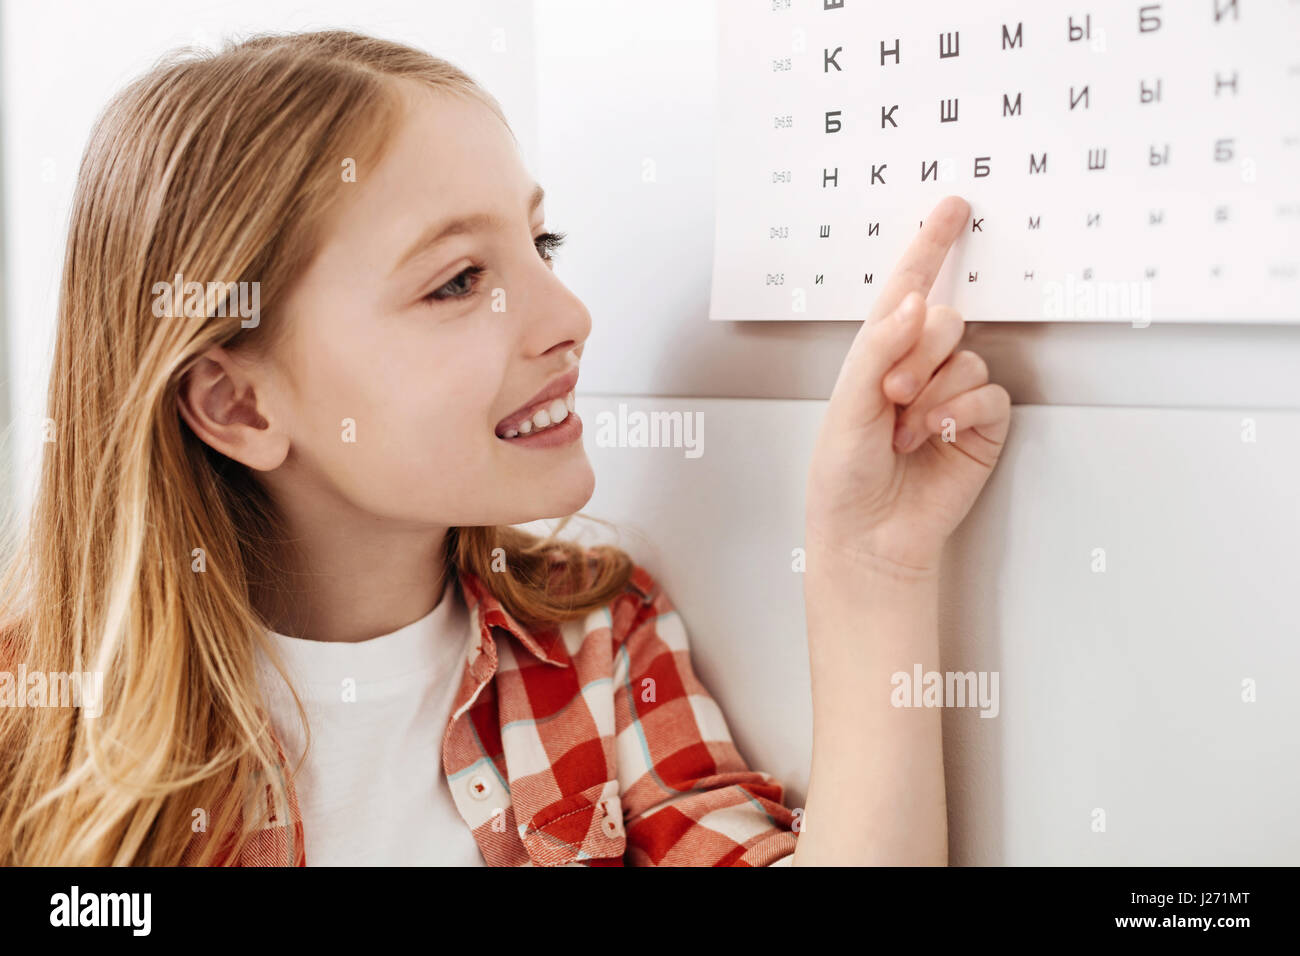 Curious child reading letters from doctors chart - Stock Image